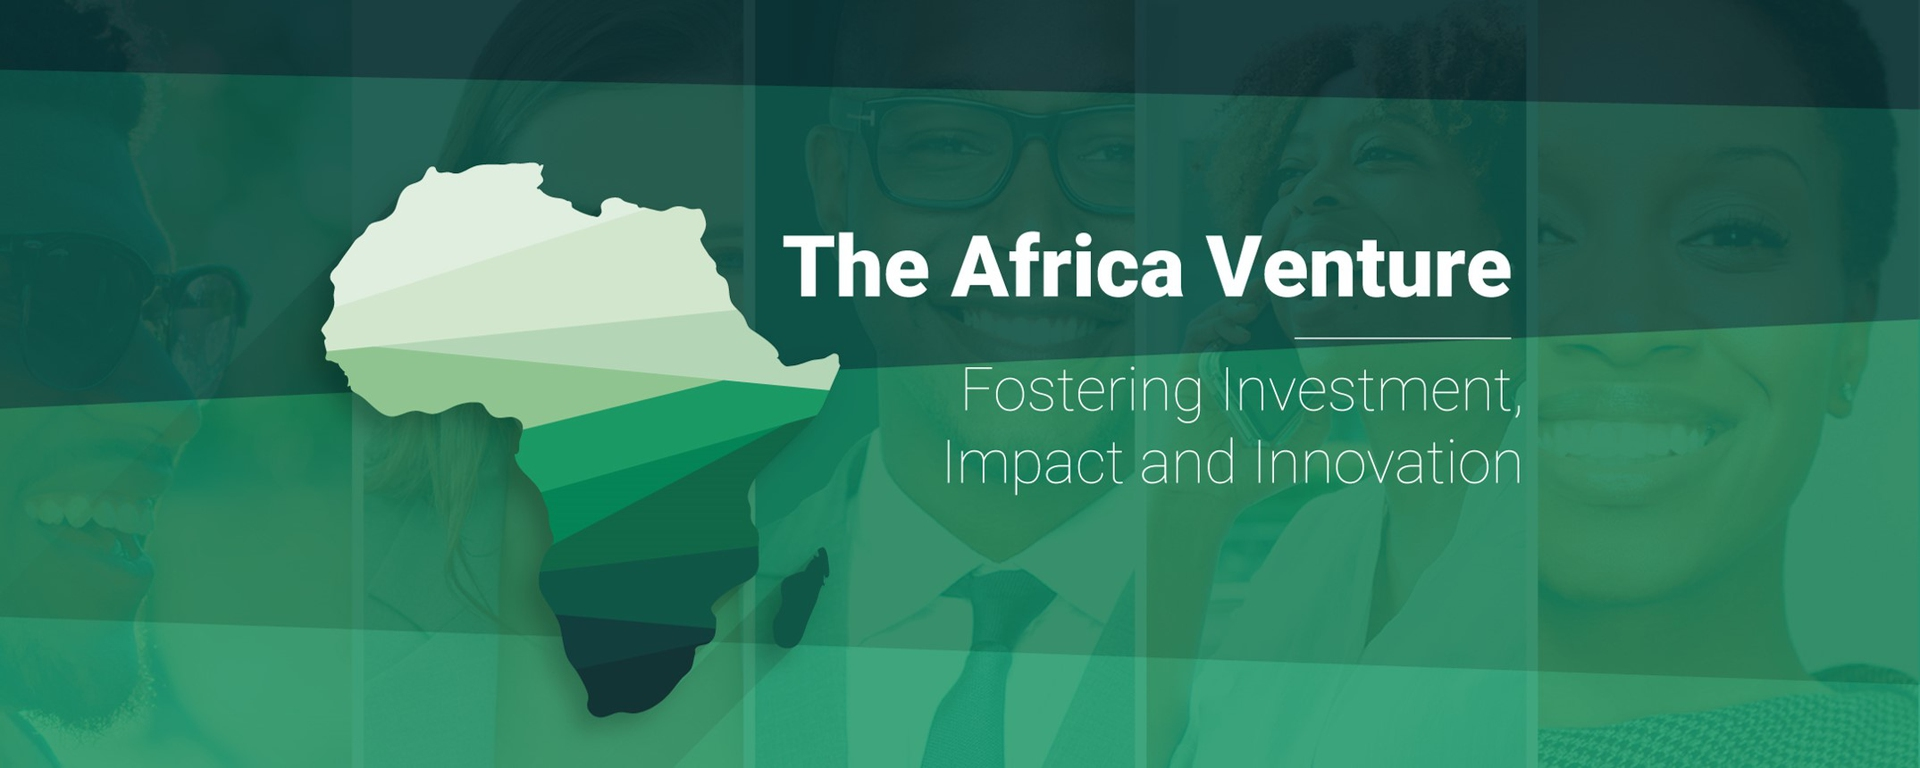 INSEAD Africa Club - INSEAD Africa Business Conference 2019 Movemeback African event cover image